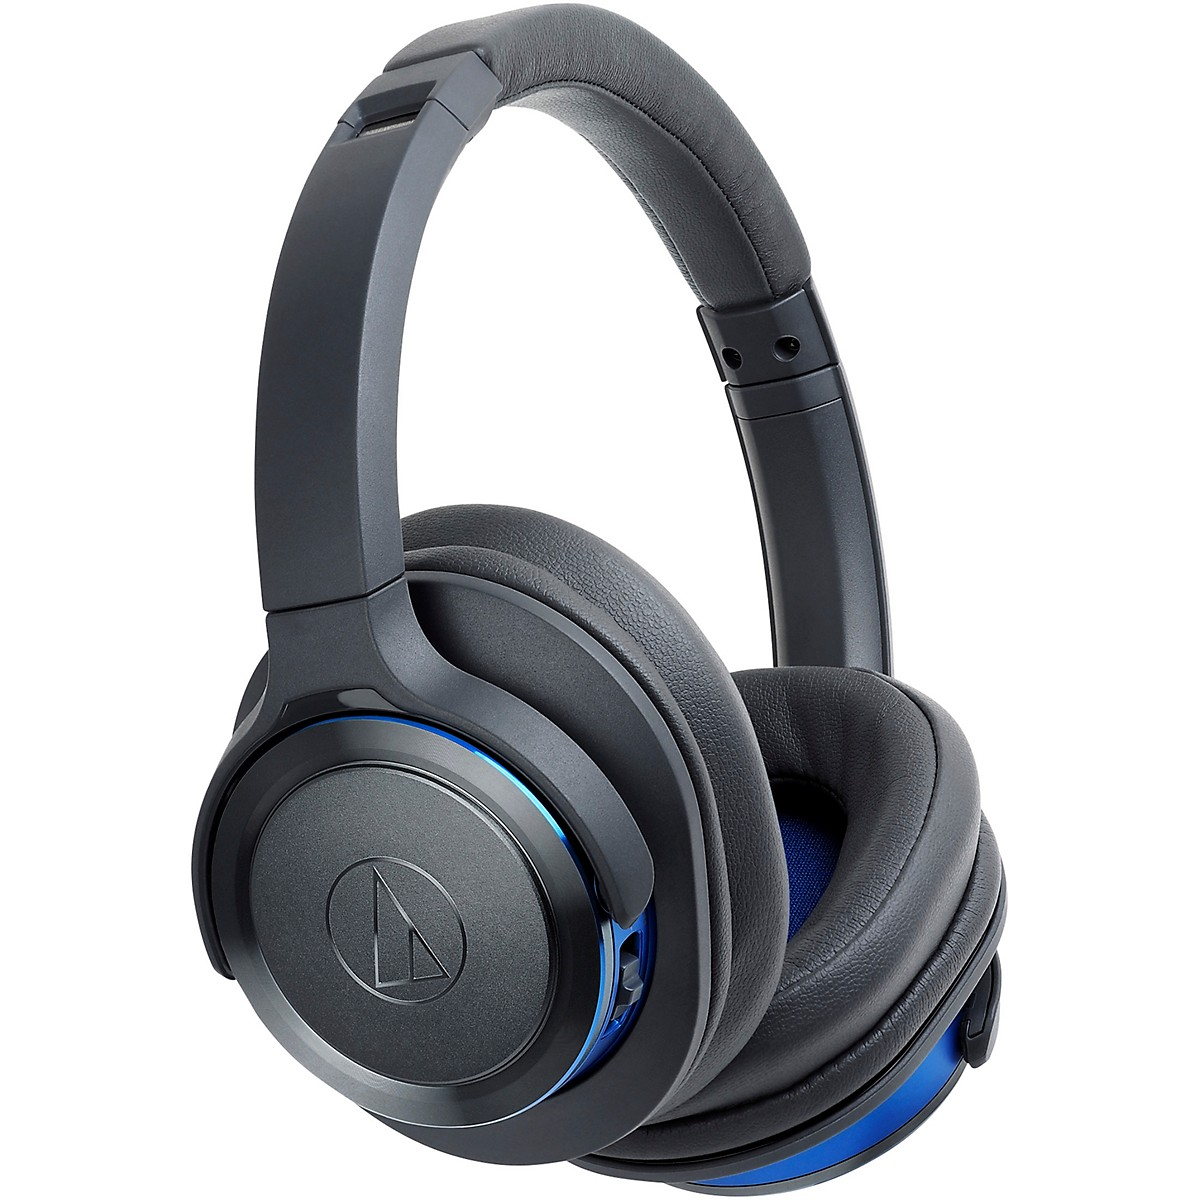 Audio-Technica ATH-WS660BTGBL Solid Bass Over-Ear Bluetooth Headphone in Blue/Gray